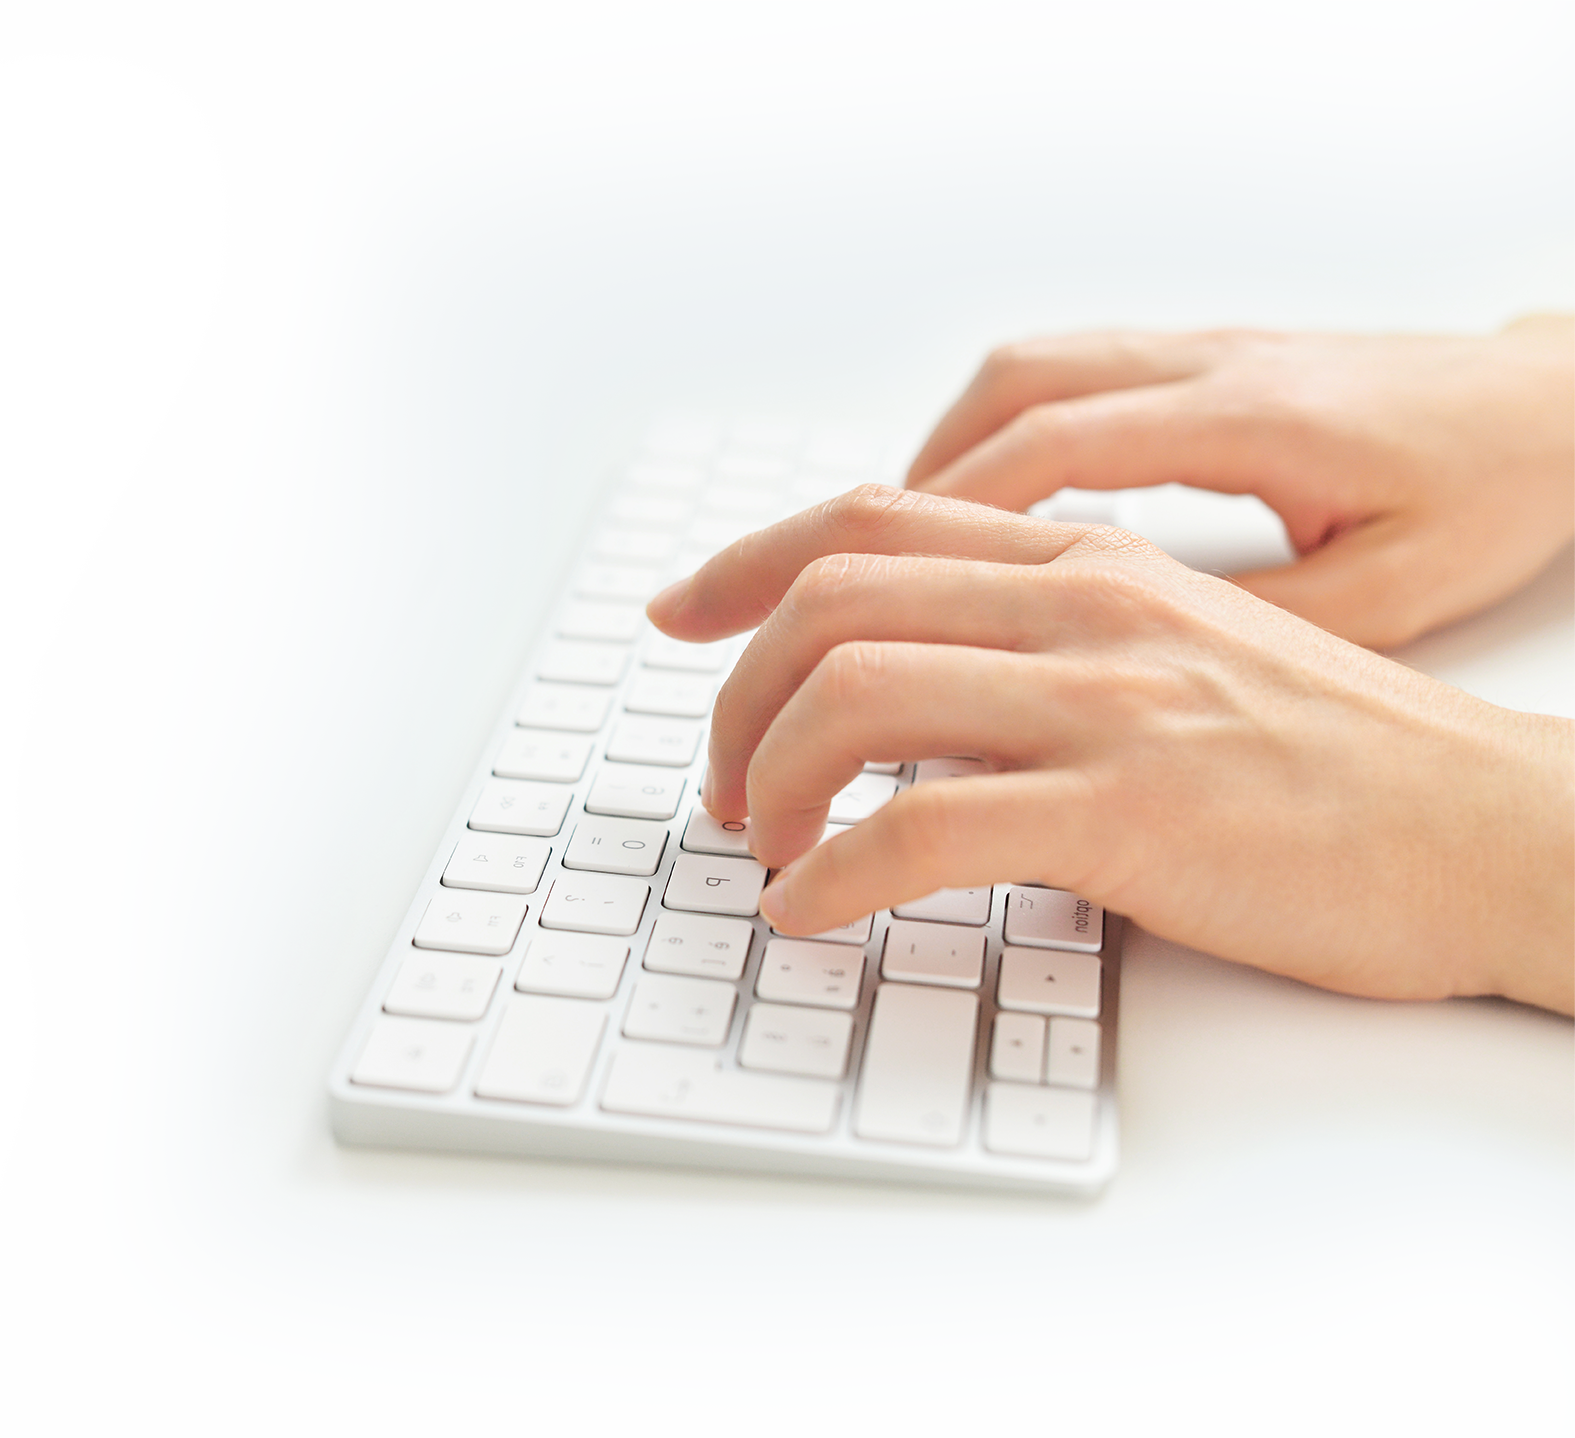 person typing on a keyboard - messaging guides